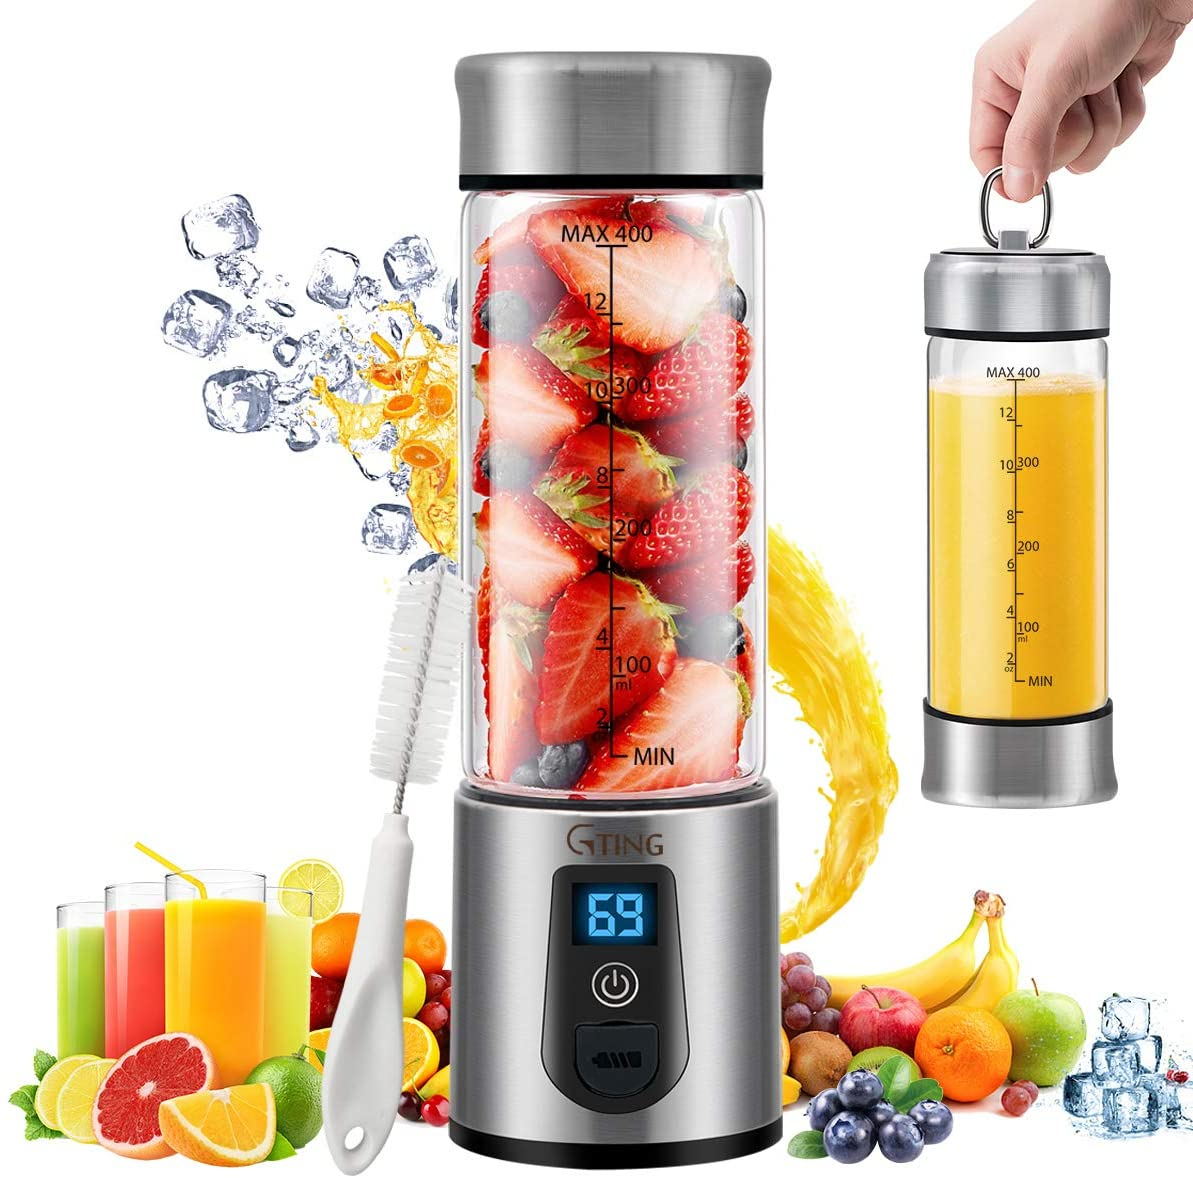 G-TING USB Rechargeable Portable Blenders